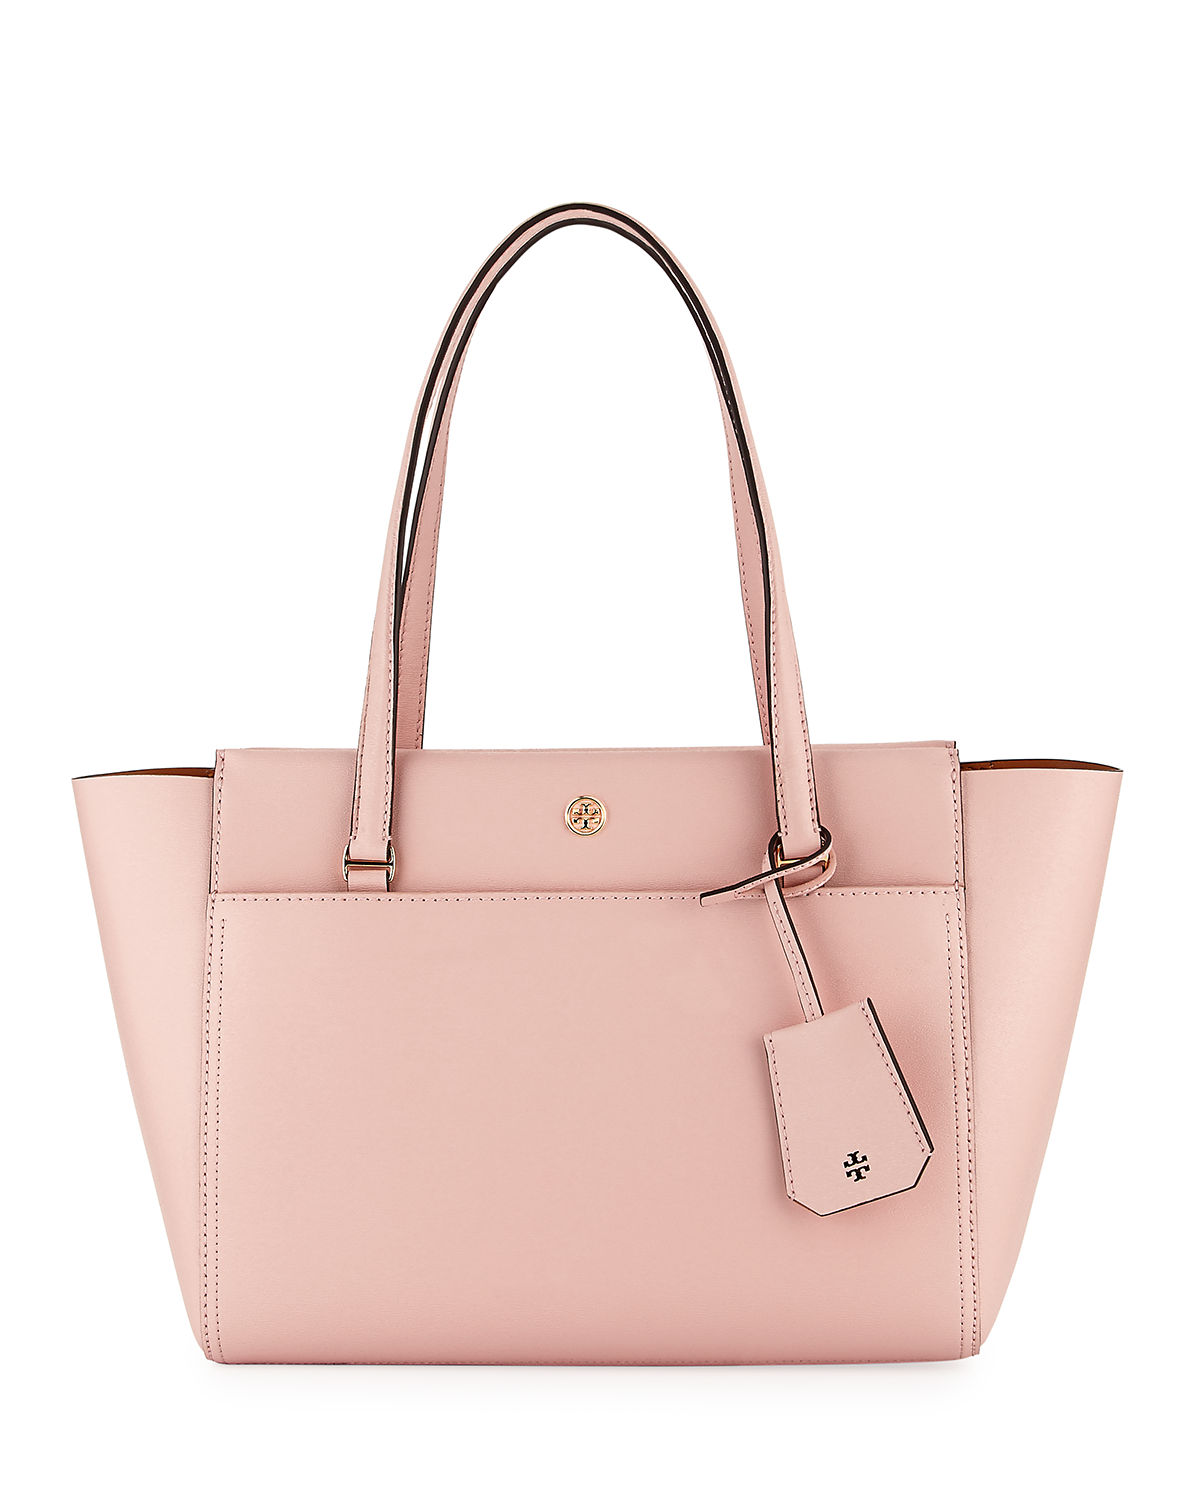 f363ccf25d75 Tory Burch Parker Small Tote Bag